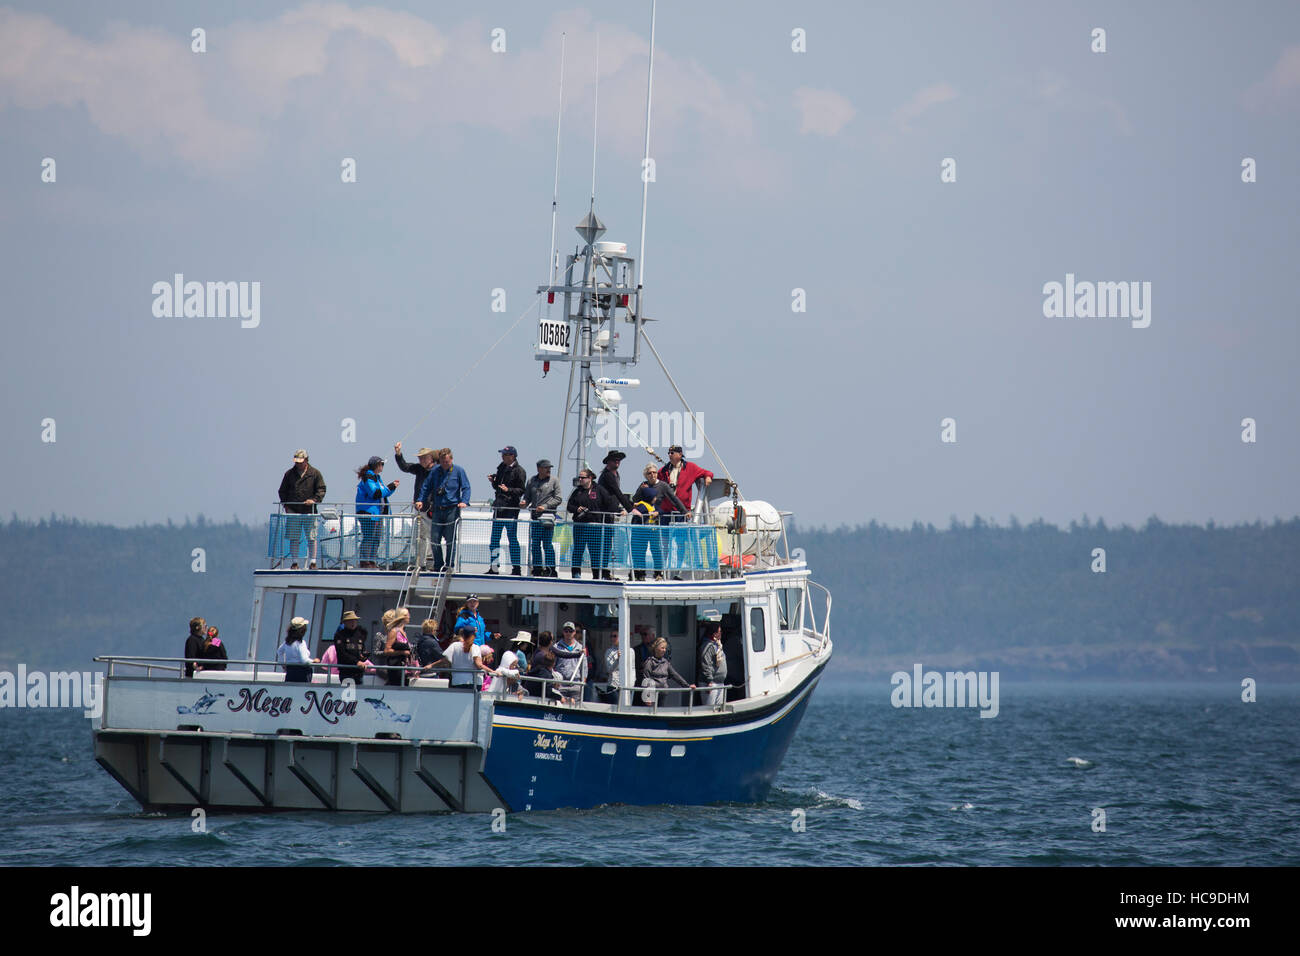 A whale watching cruise off Nova Scotia, Canada. The area is known for whale watching tours. - Stock Image